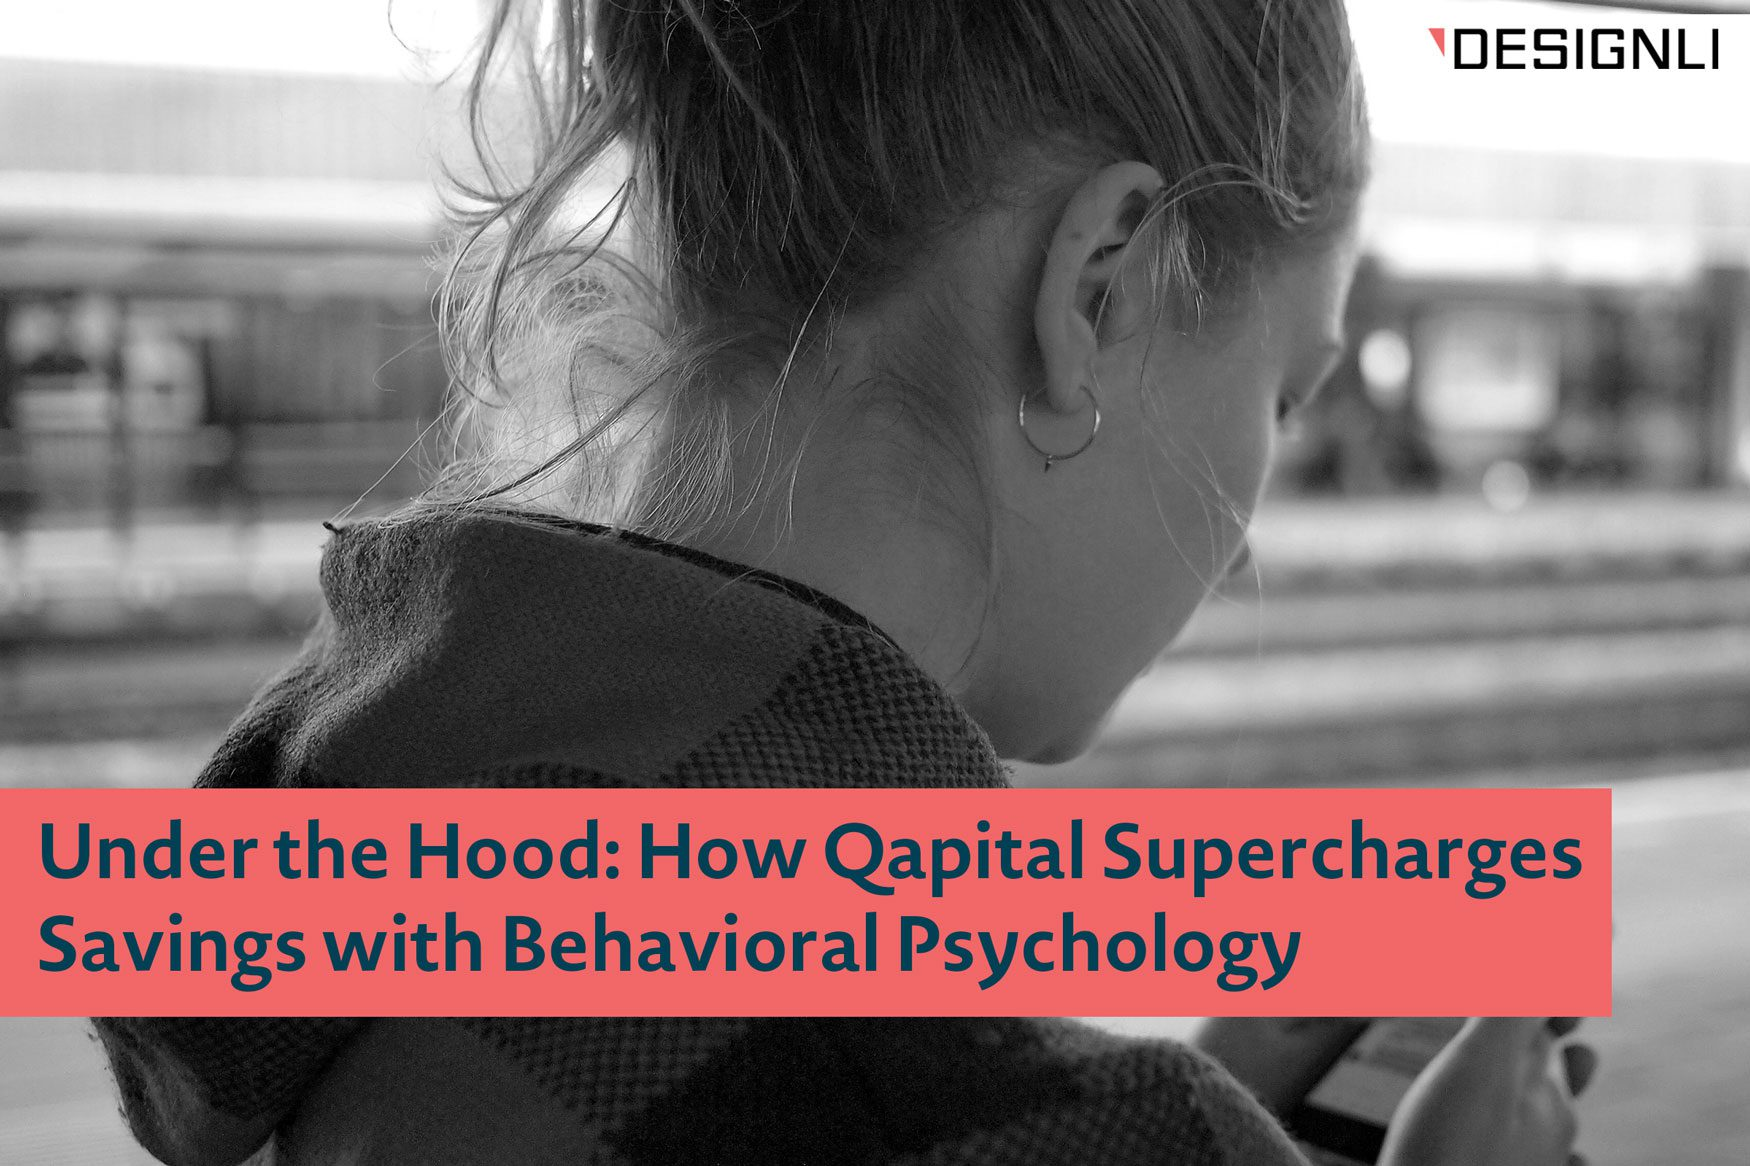 Qapital behavioral psychology